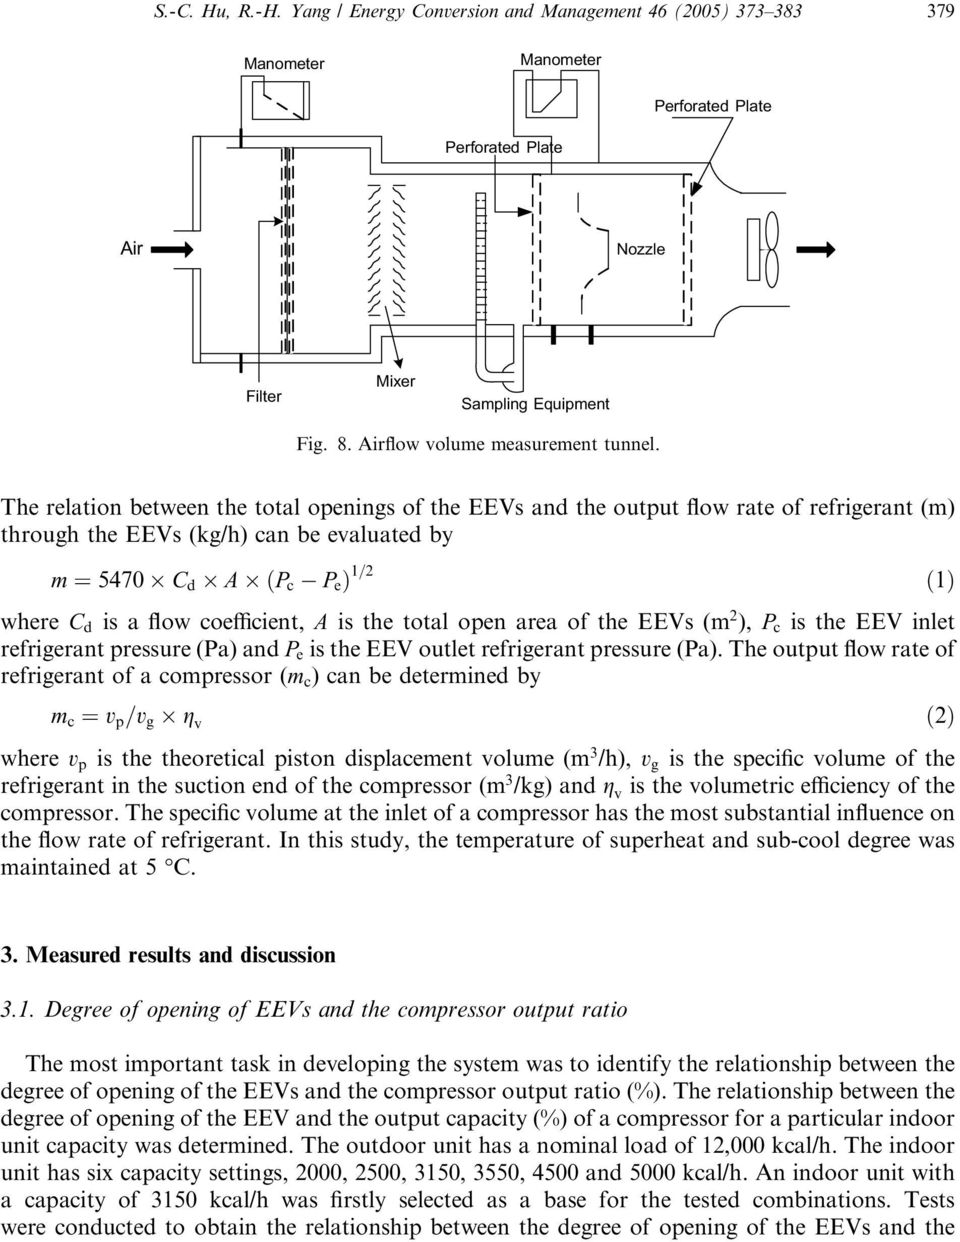 The relation between the total openings of the EEVs and the output flow rate of refrigerant (m) through the EEVs (kg/h) can be evaluated by m ¼ 5470 C d A ðp c P e Þ 1=2 where C d is a flow